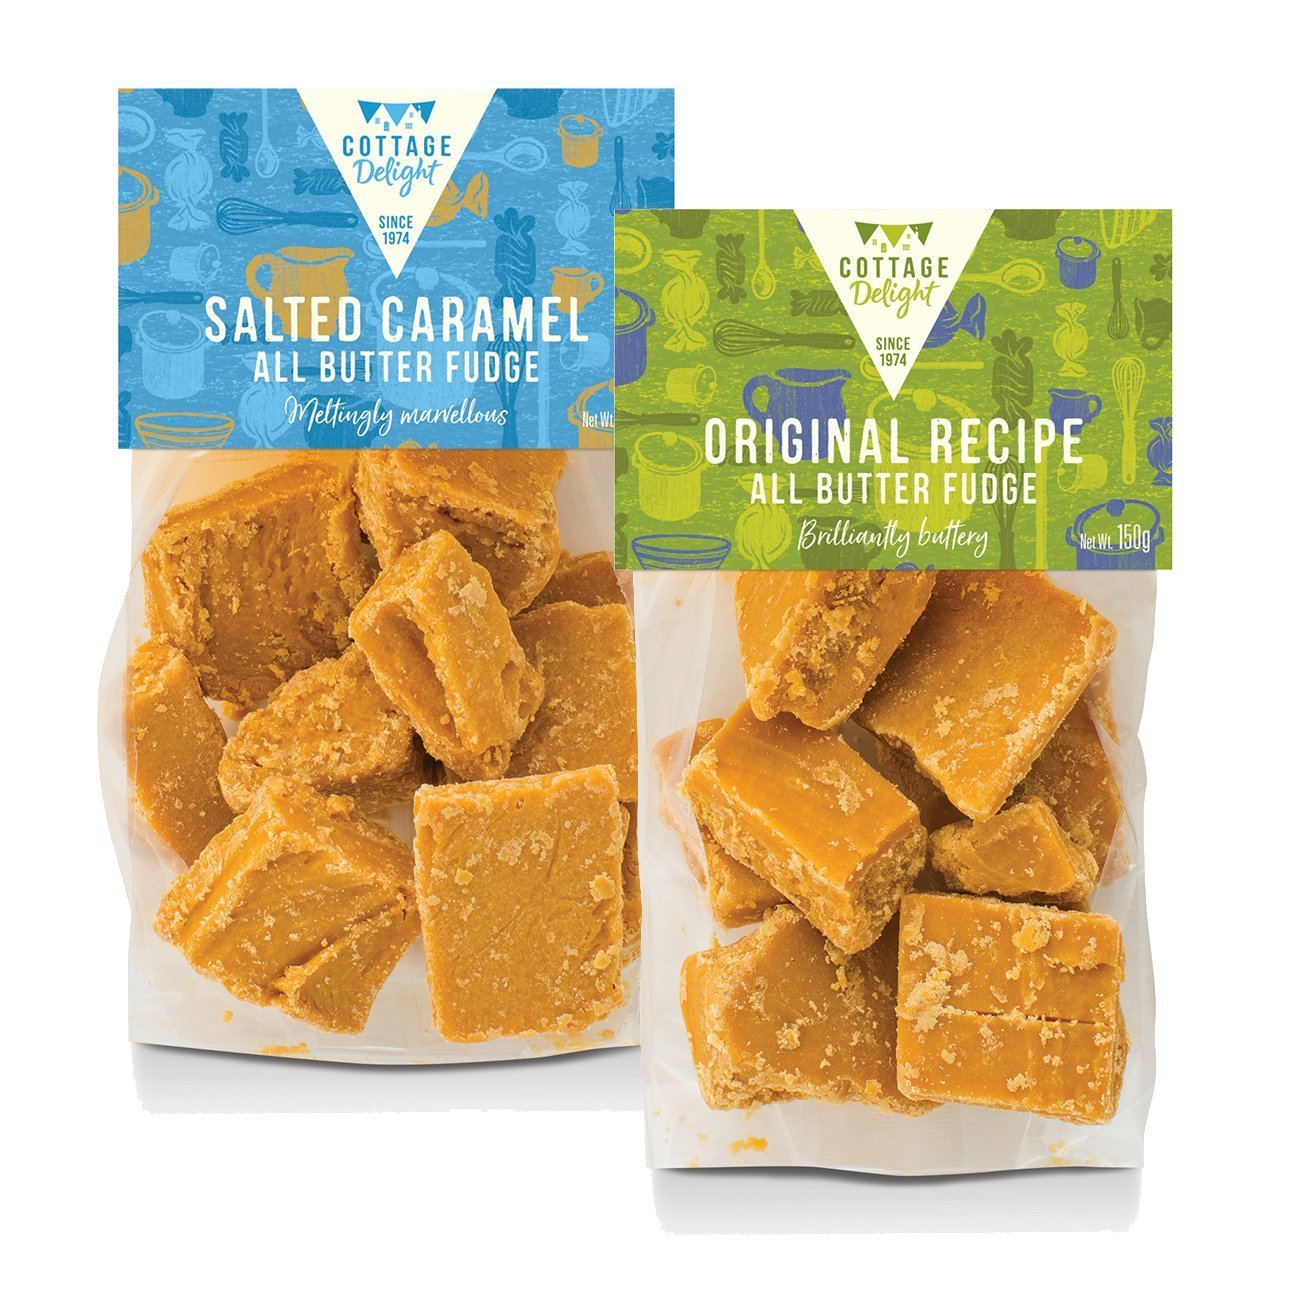 Cottage Delight Salted Caramel and Original All Butter Fudge Assorted 150g (2 pack)